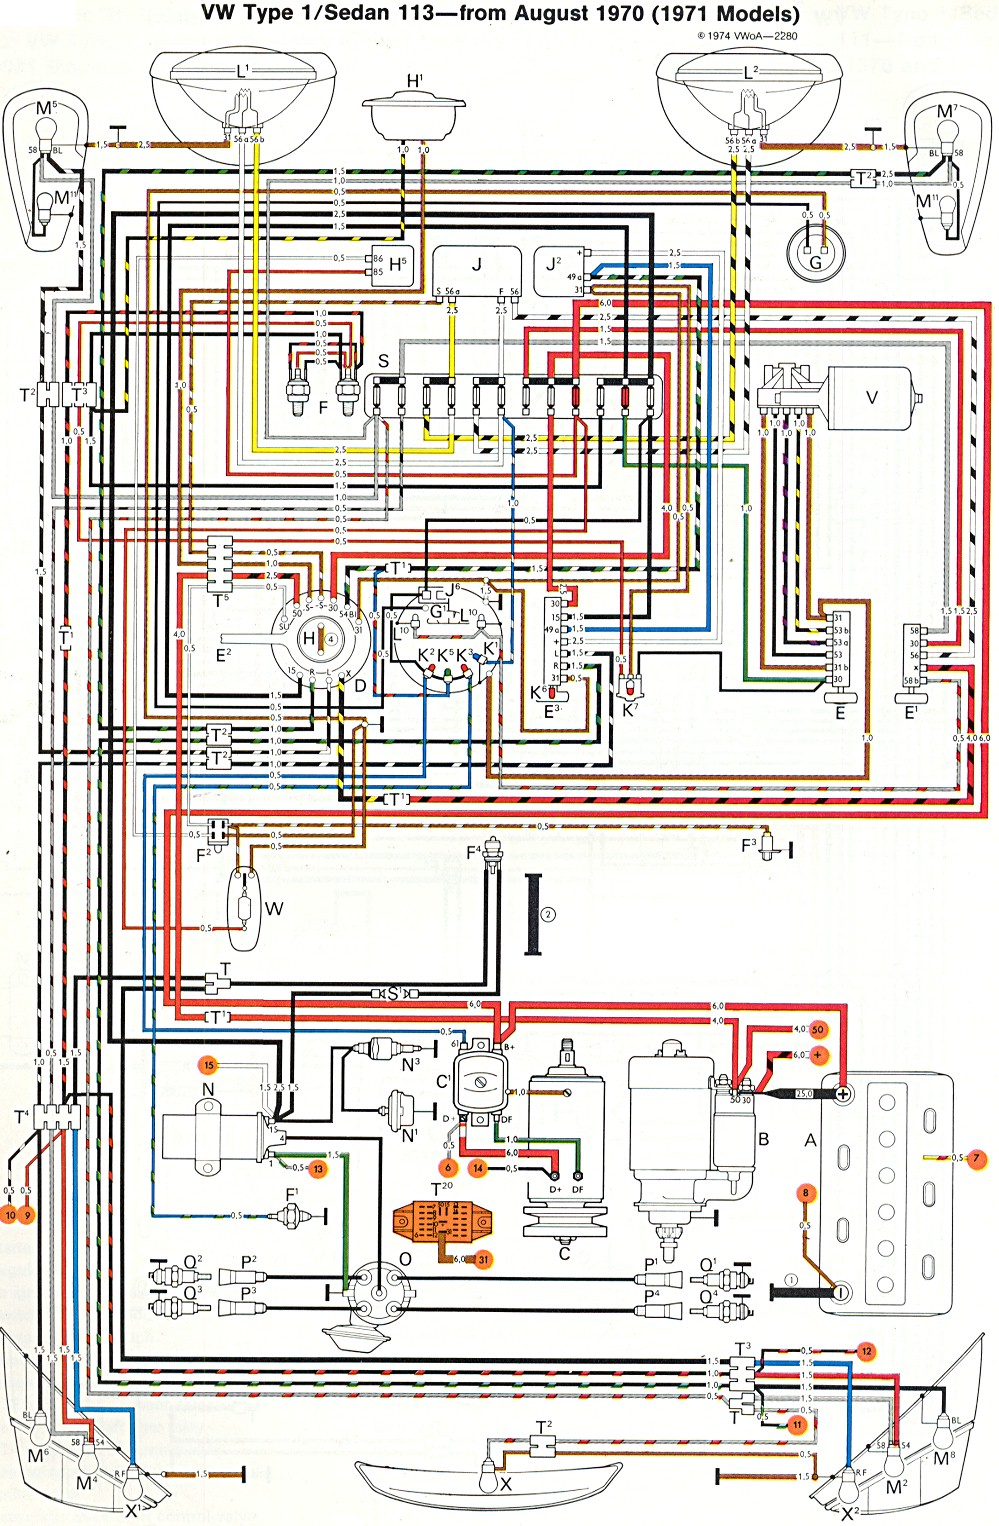 bug_super_71 1971 super beetle wiring diagram thegoldenbug com 1971 vw beetle wiring diagram at panicattacktreatment.co